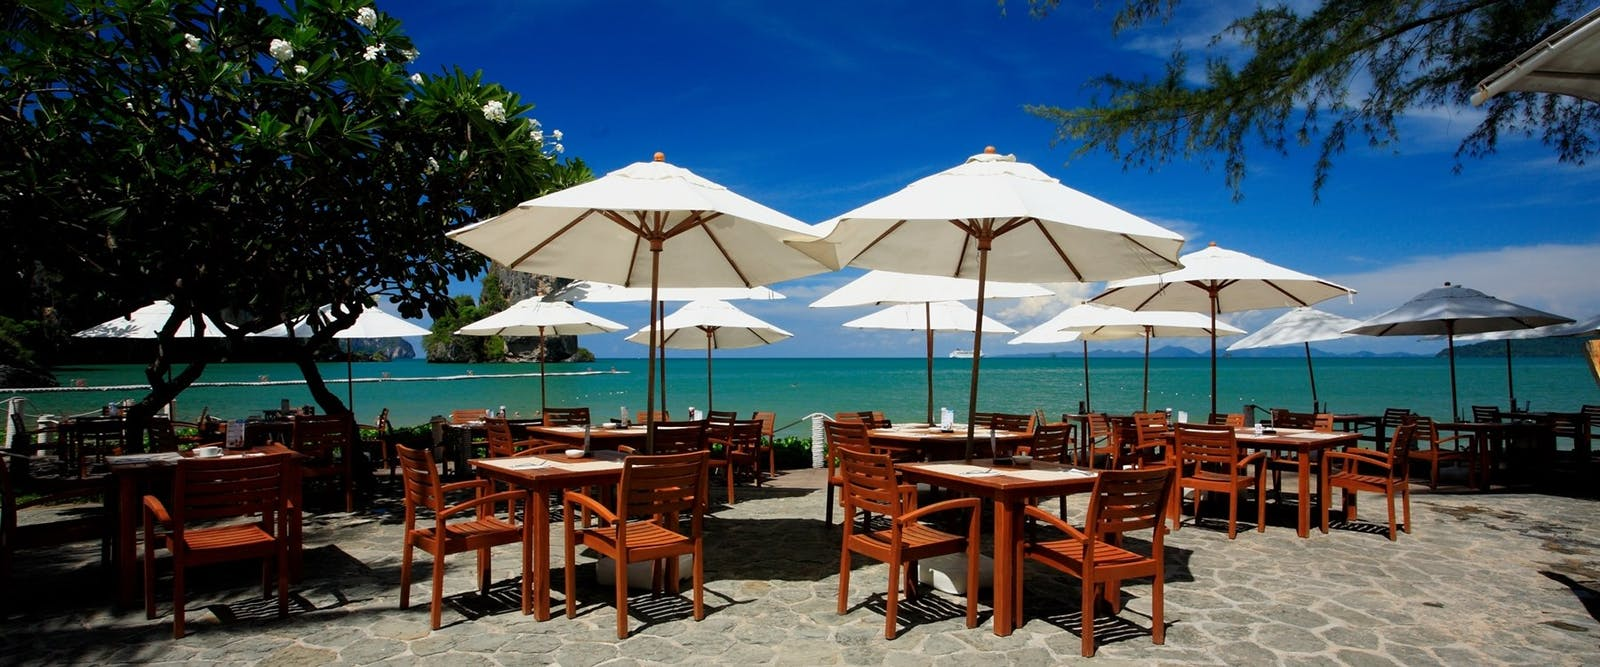 on the rocks grill restaurant  at Centara Grand Beach Resort & Villas Krabi